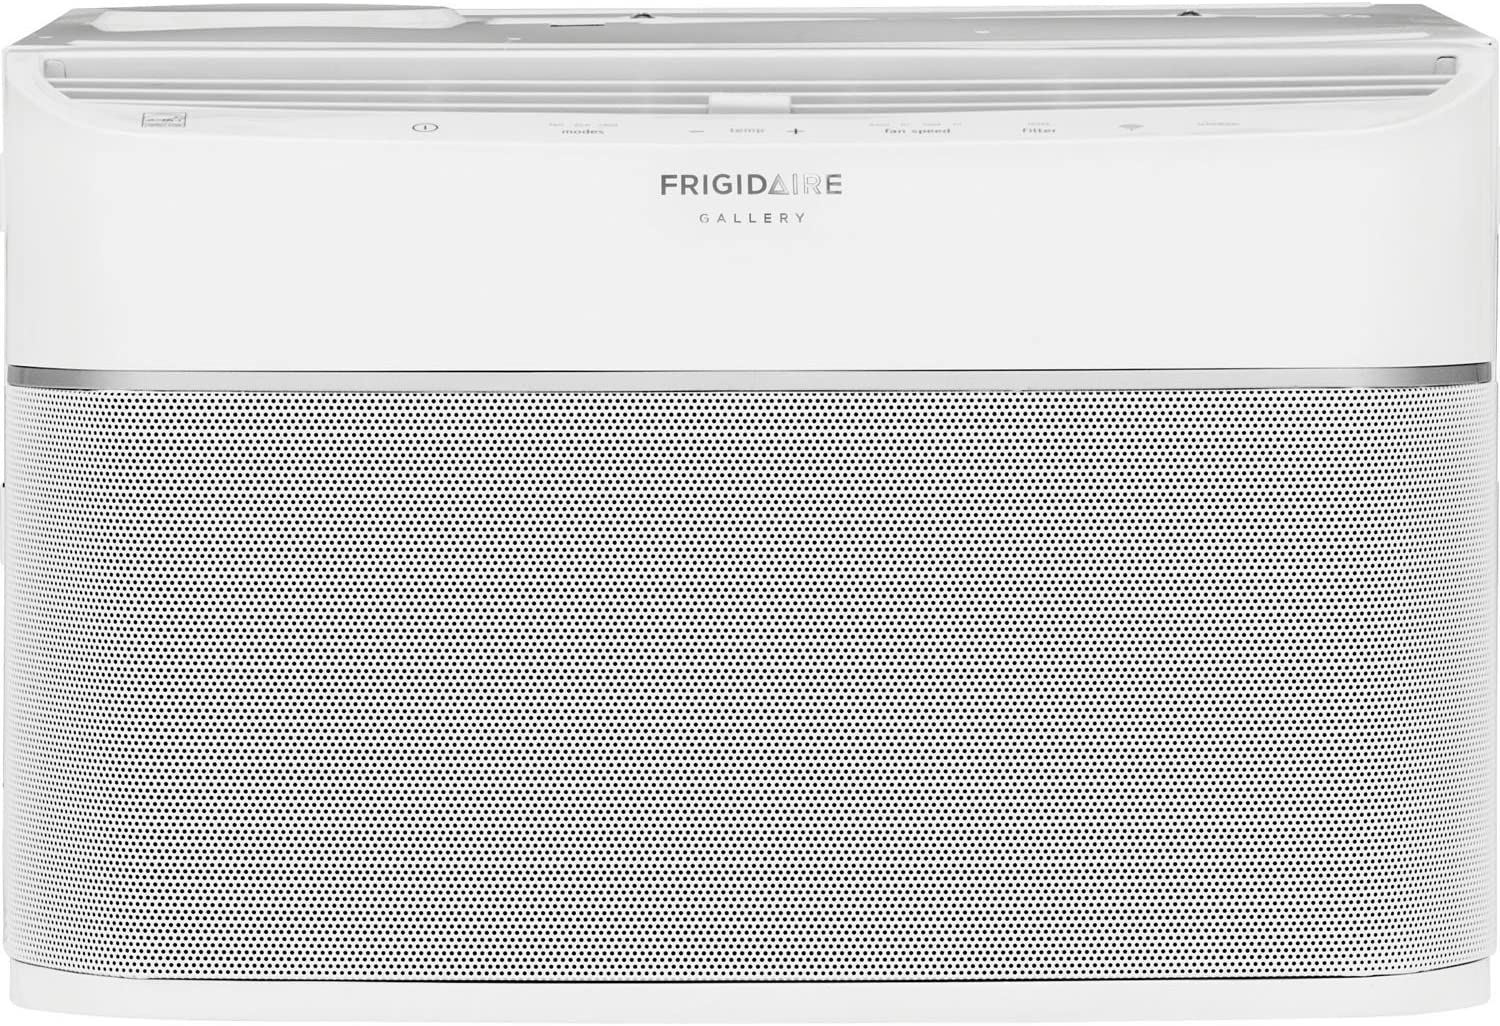 Frigidaire Smart Window Air Conditioner, Wi-FI, 8000 BTU, 115V, Compatible with Alexa